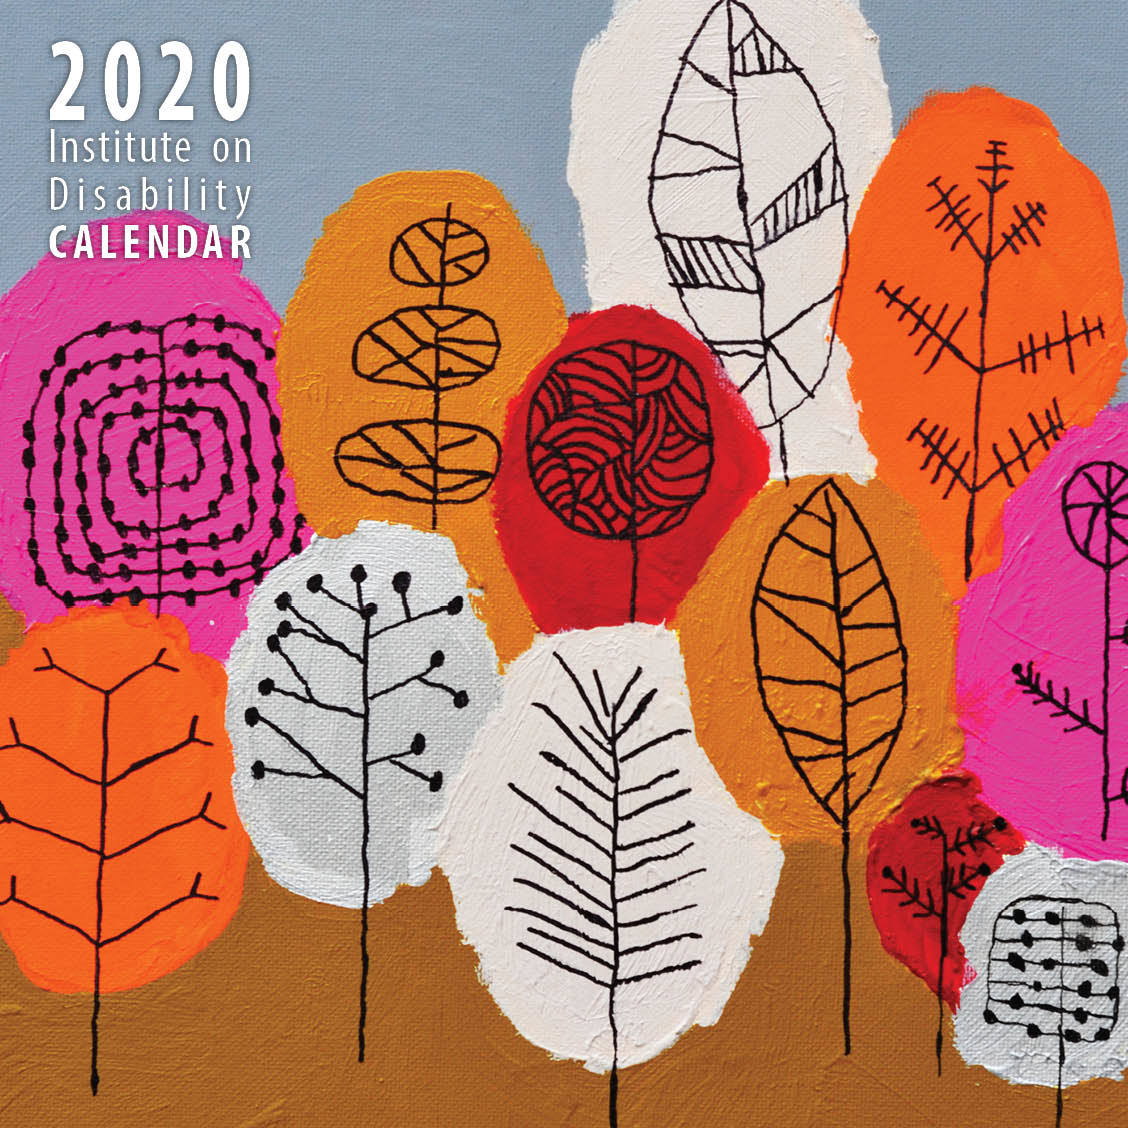 Linked image to IOD Bookstore page to purchase the 2020 IOD Calendar